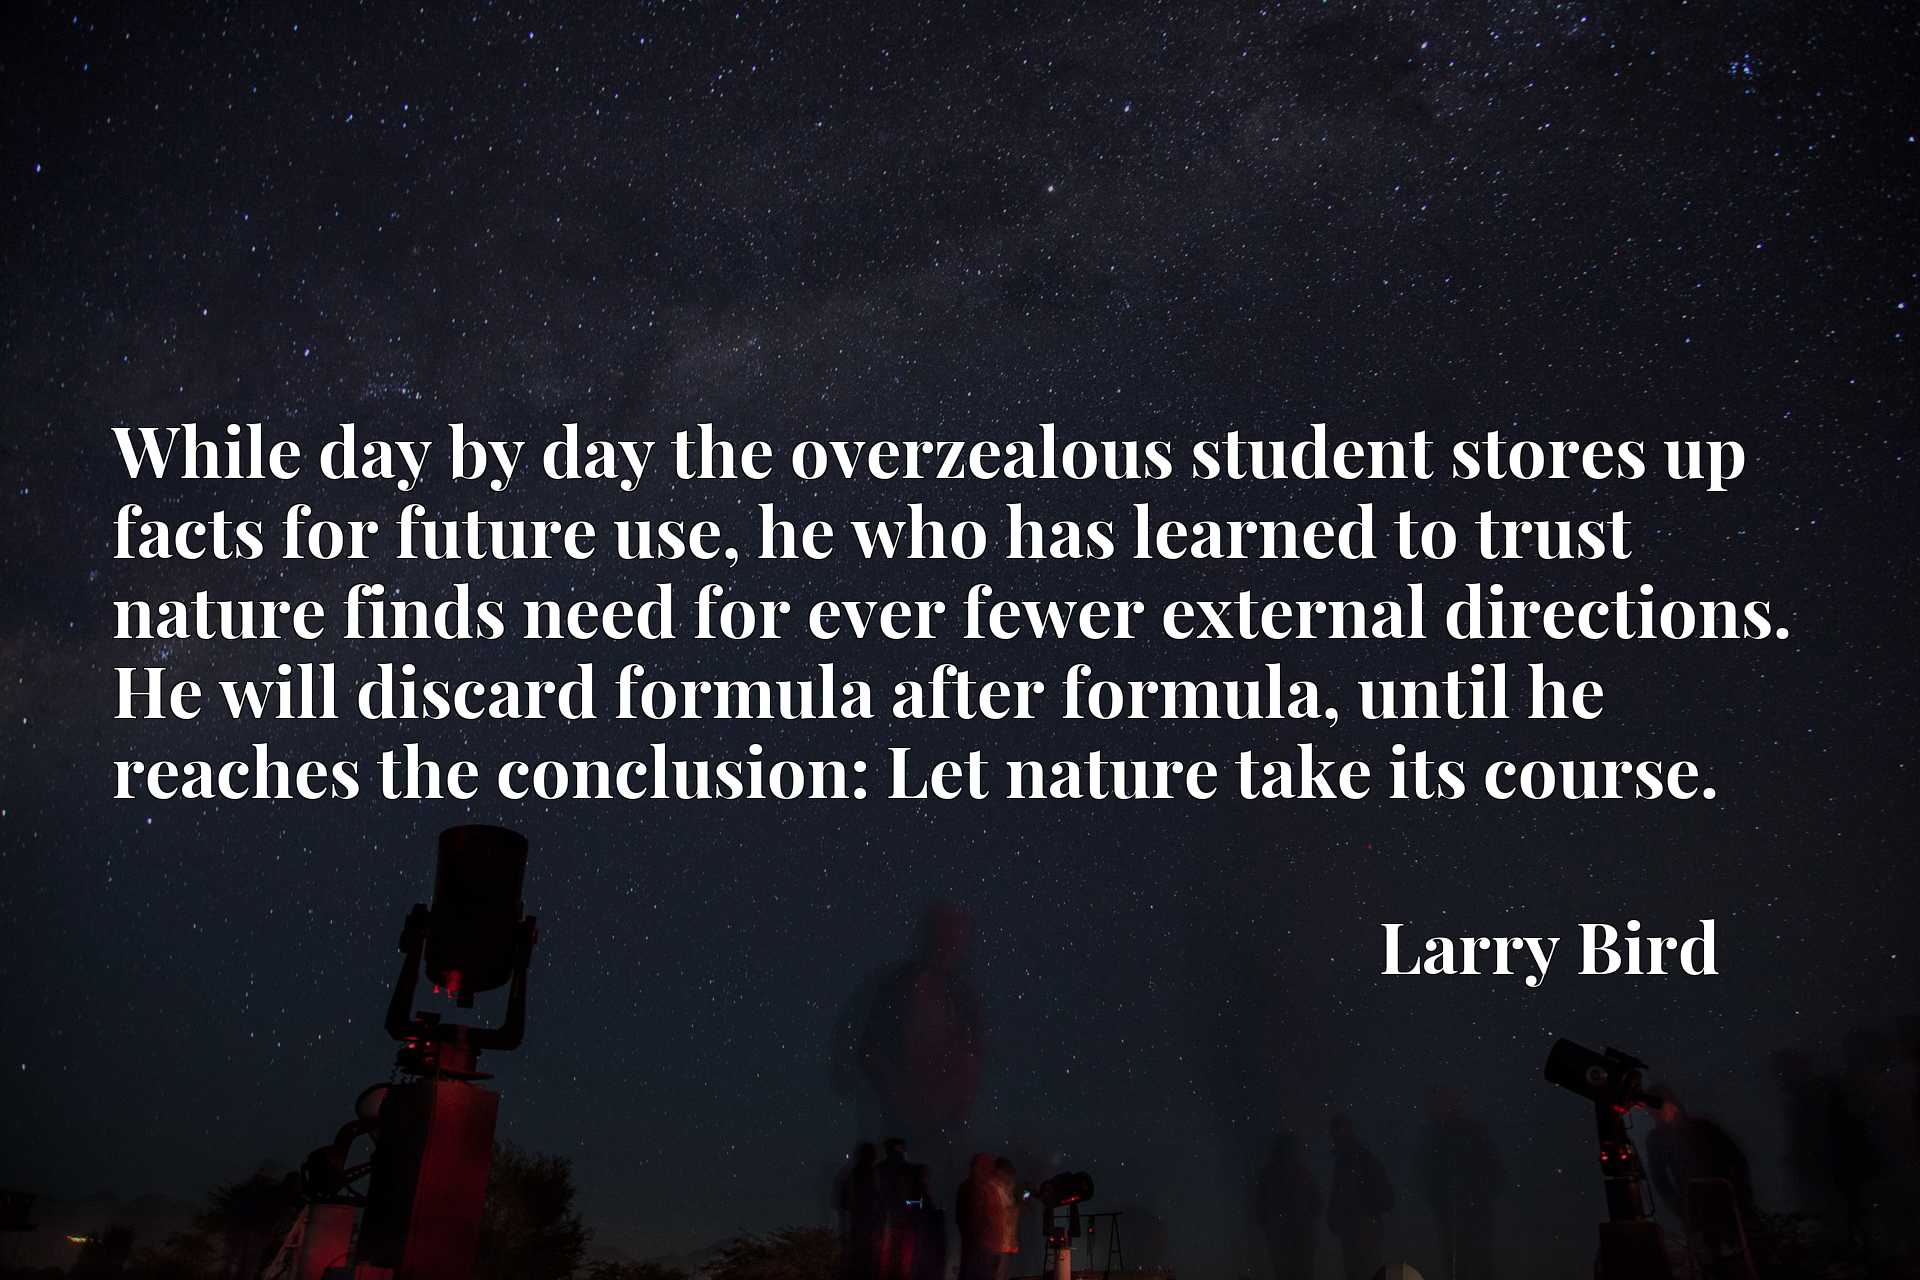 While day by day the overzealous student stores up facts for future use, he who has learned to trust nature finds need for ever fewer external directions. He will discard formula after formula, until he reaches the conclusion: Let nature take its course.